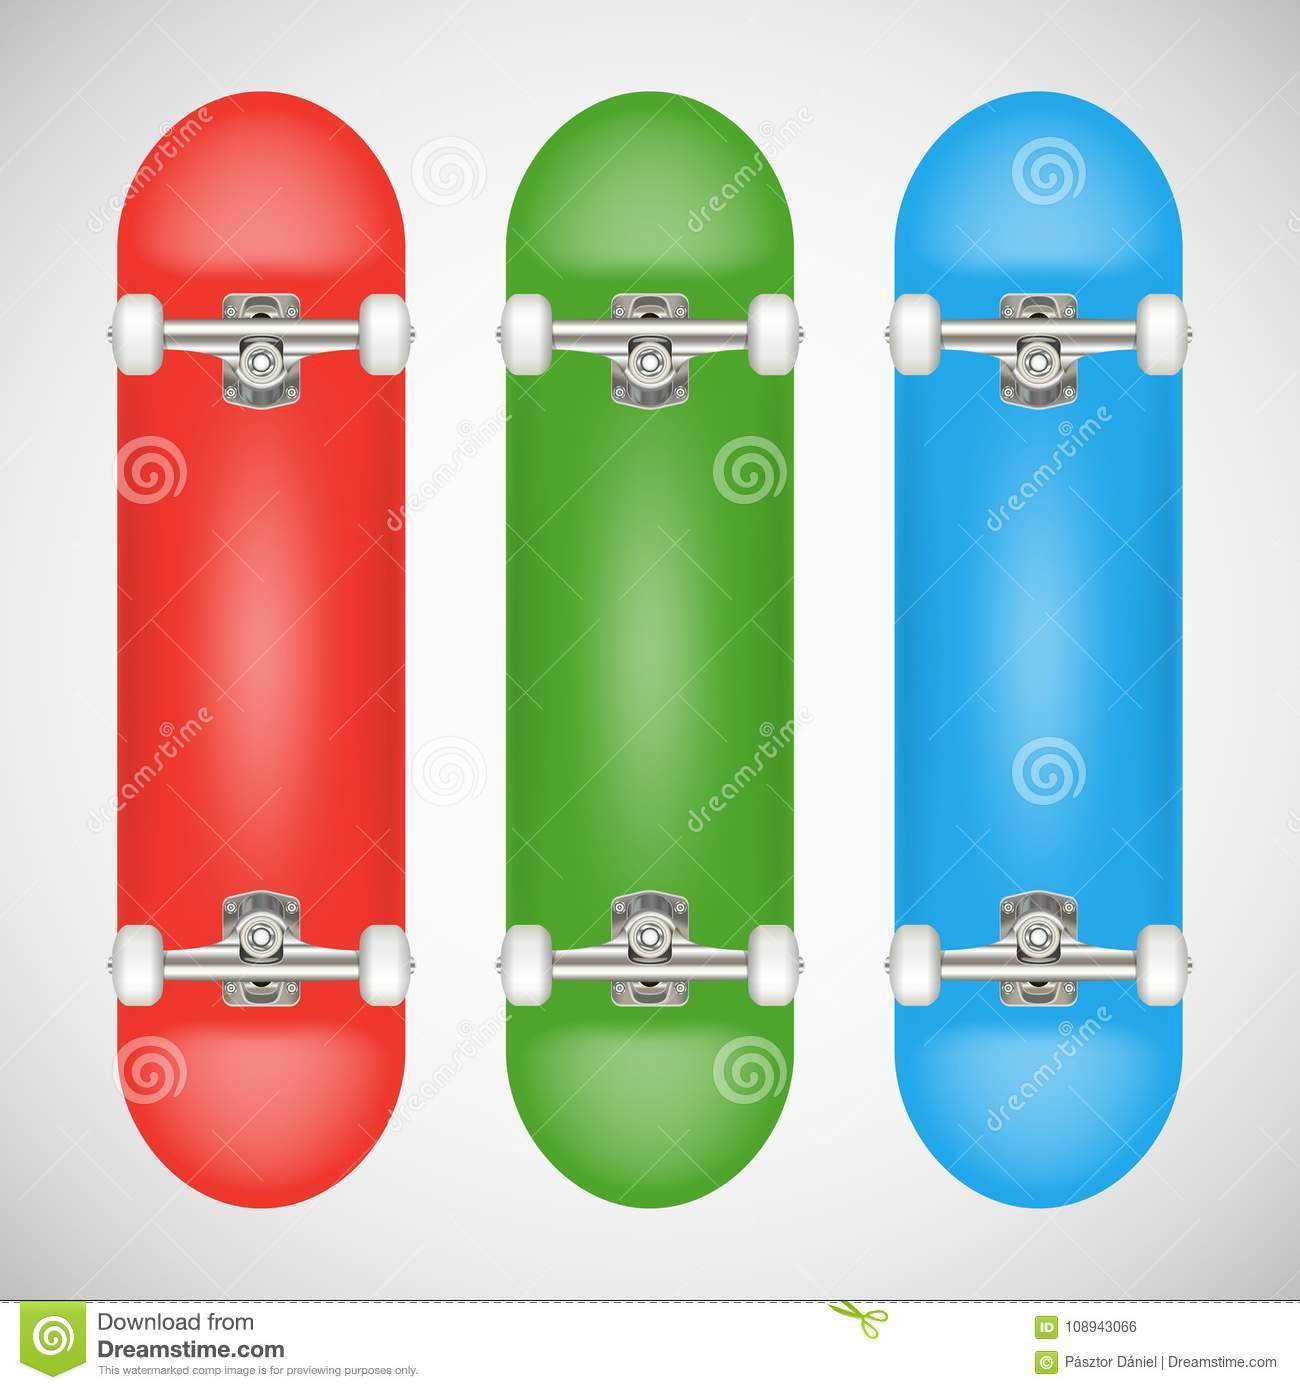 realistic blank skateboard template red green blue stock vector